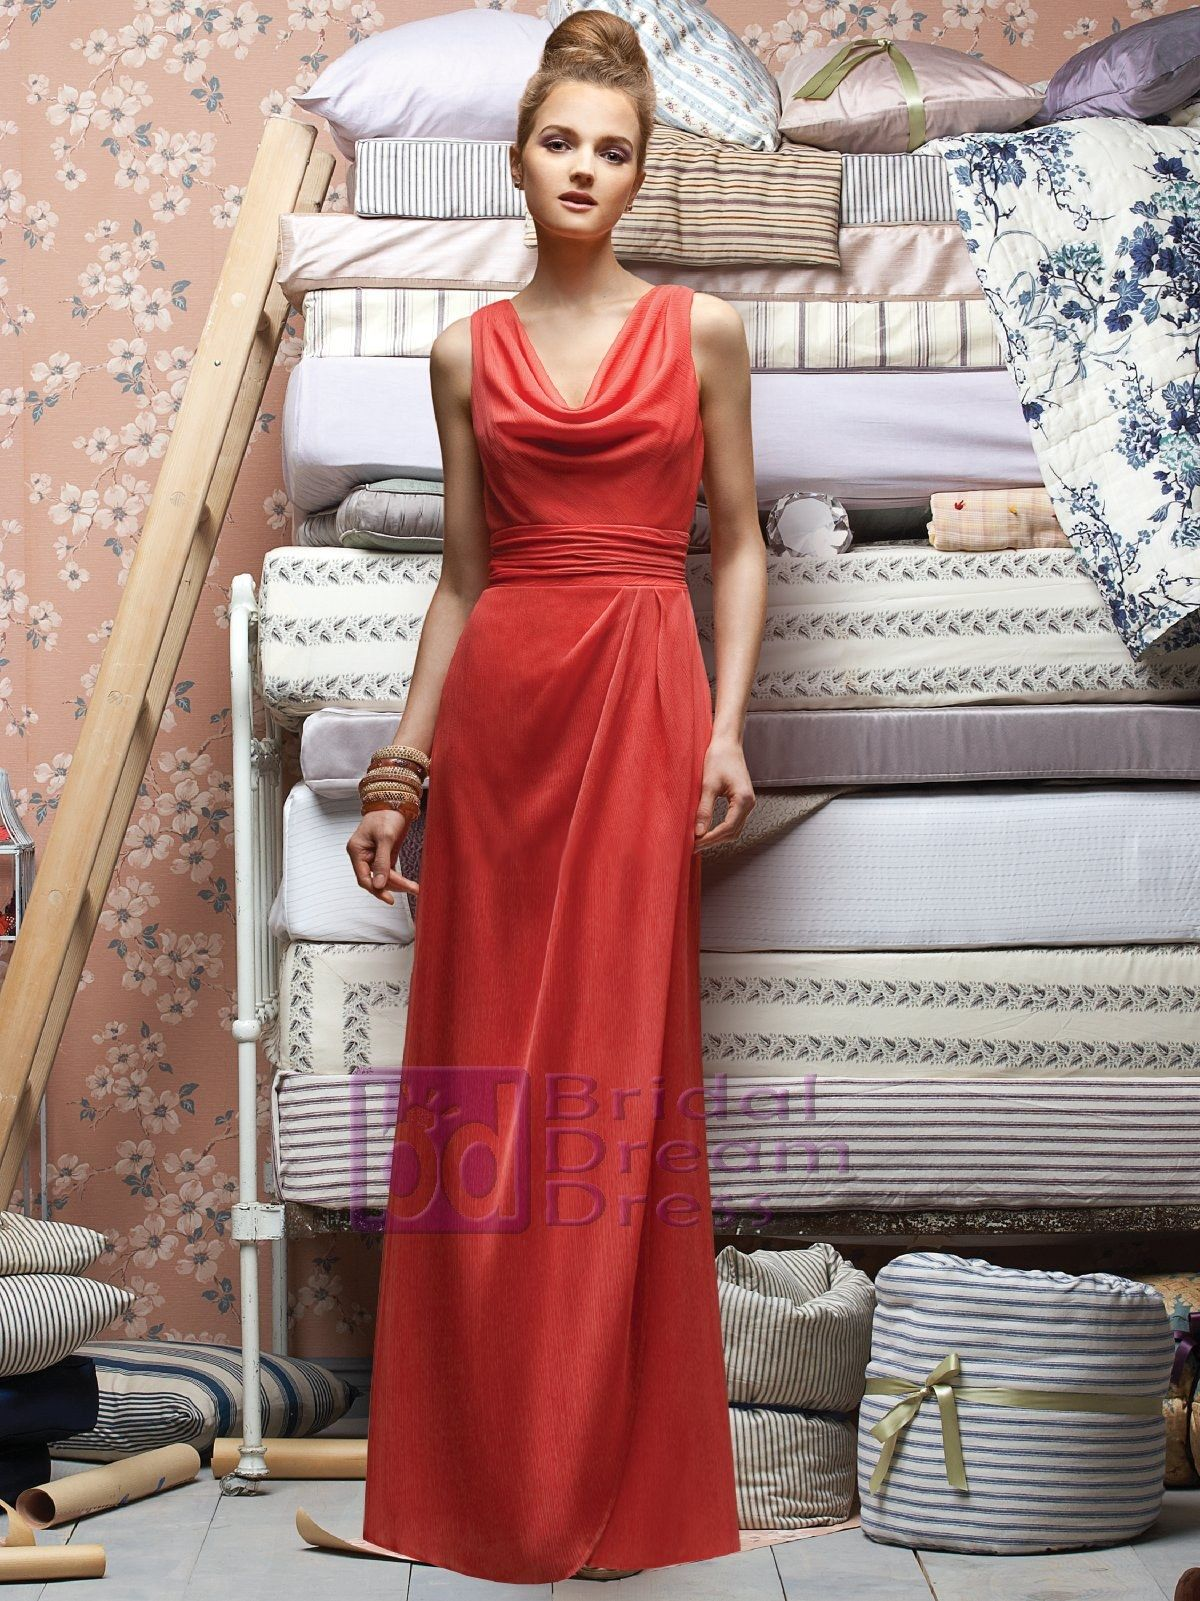 Heres my current thought for a red dress option for our heres my current thought for a red dress option for our scottsdale wedding in nov ombrellifo Gallery